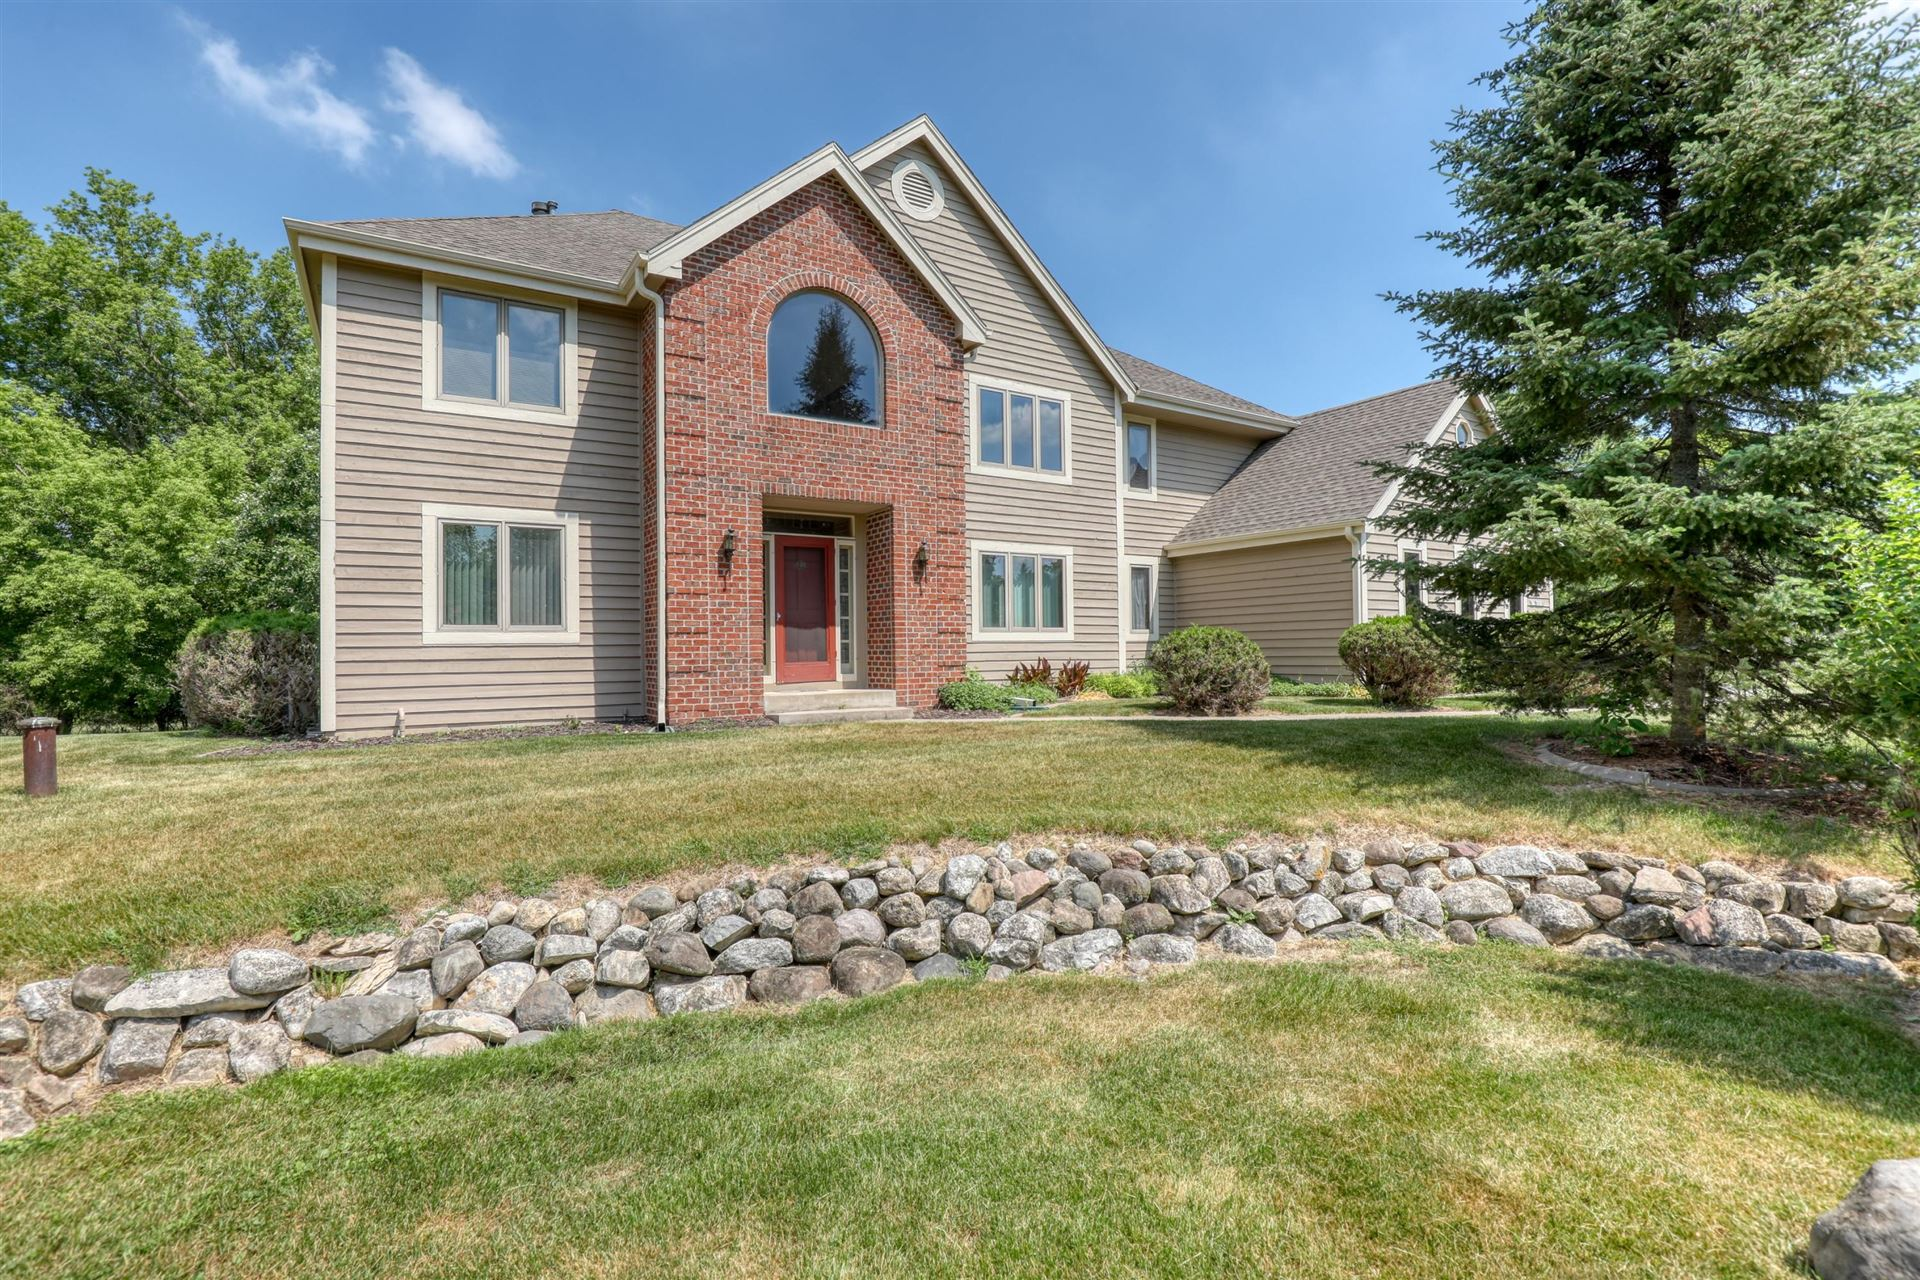 Photo for N17W30150 Crooked Creek Rd, Delafield, WI 53072 (MLS # 1745726)